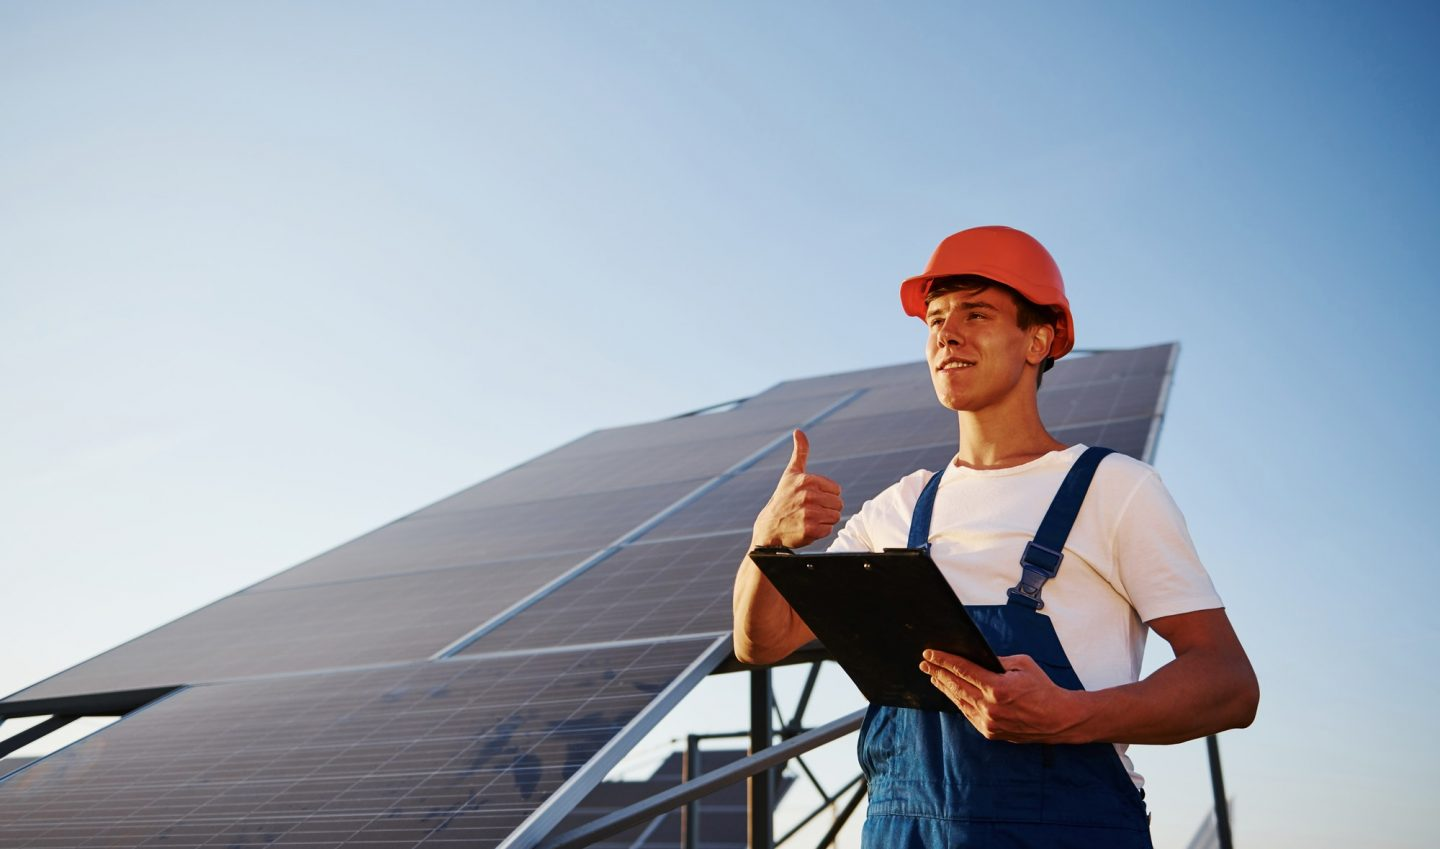 Shows thumb up. Male worker in blue uniform outdoors with solar batteries at sunny day